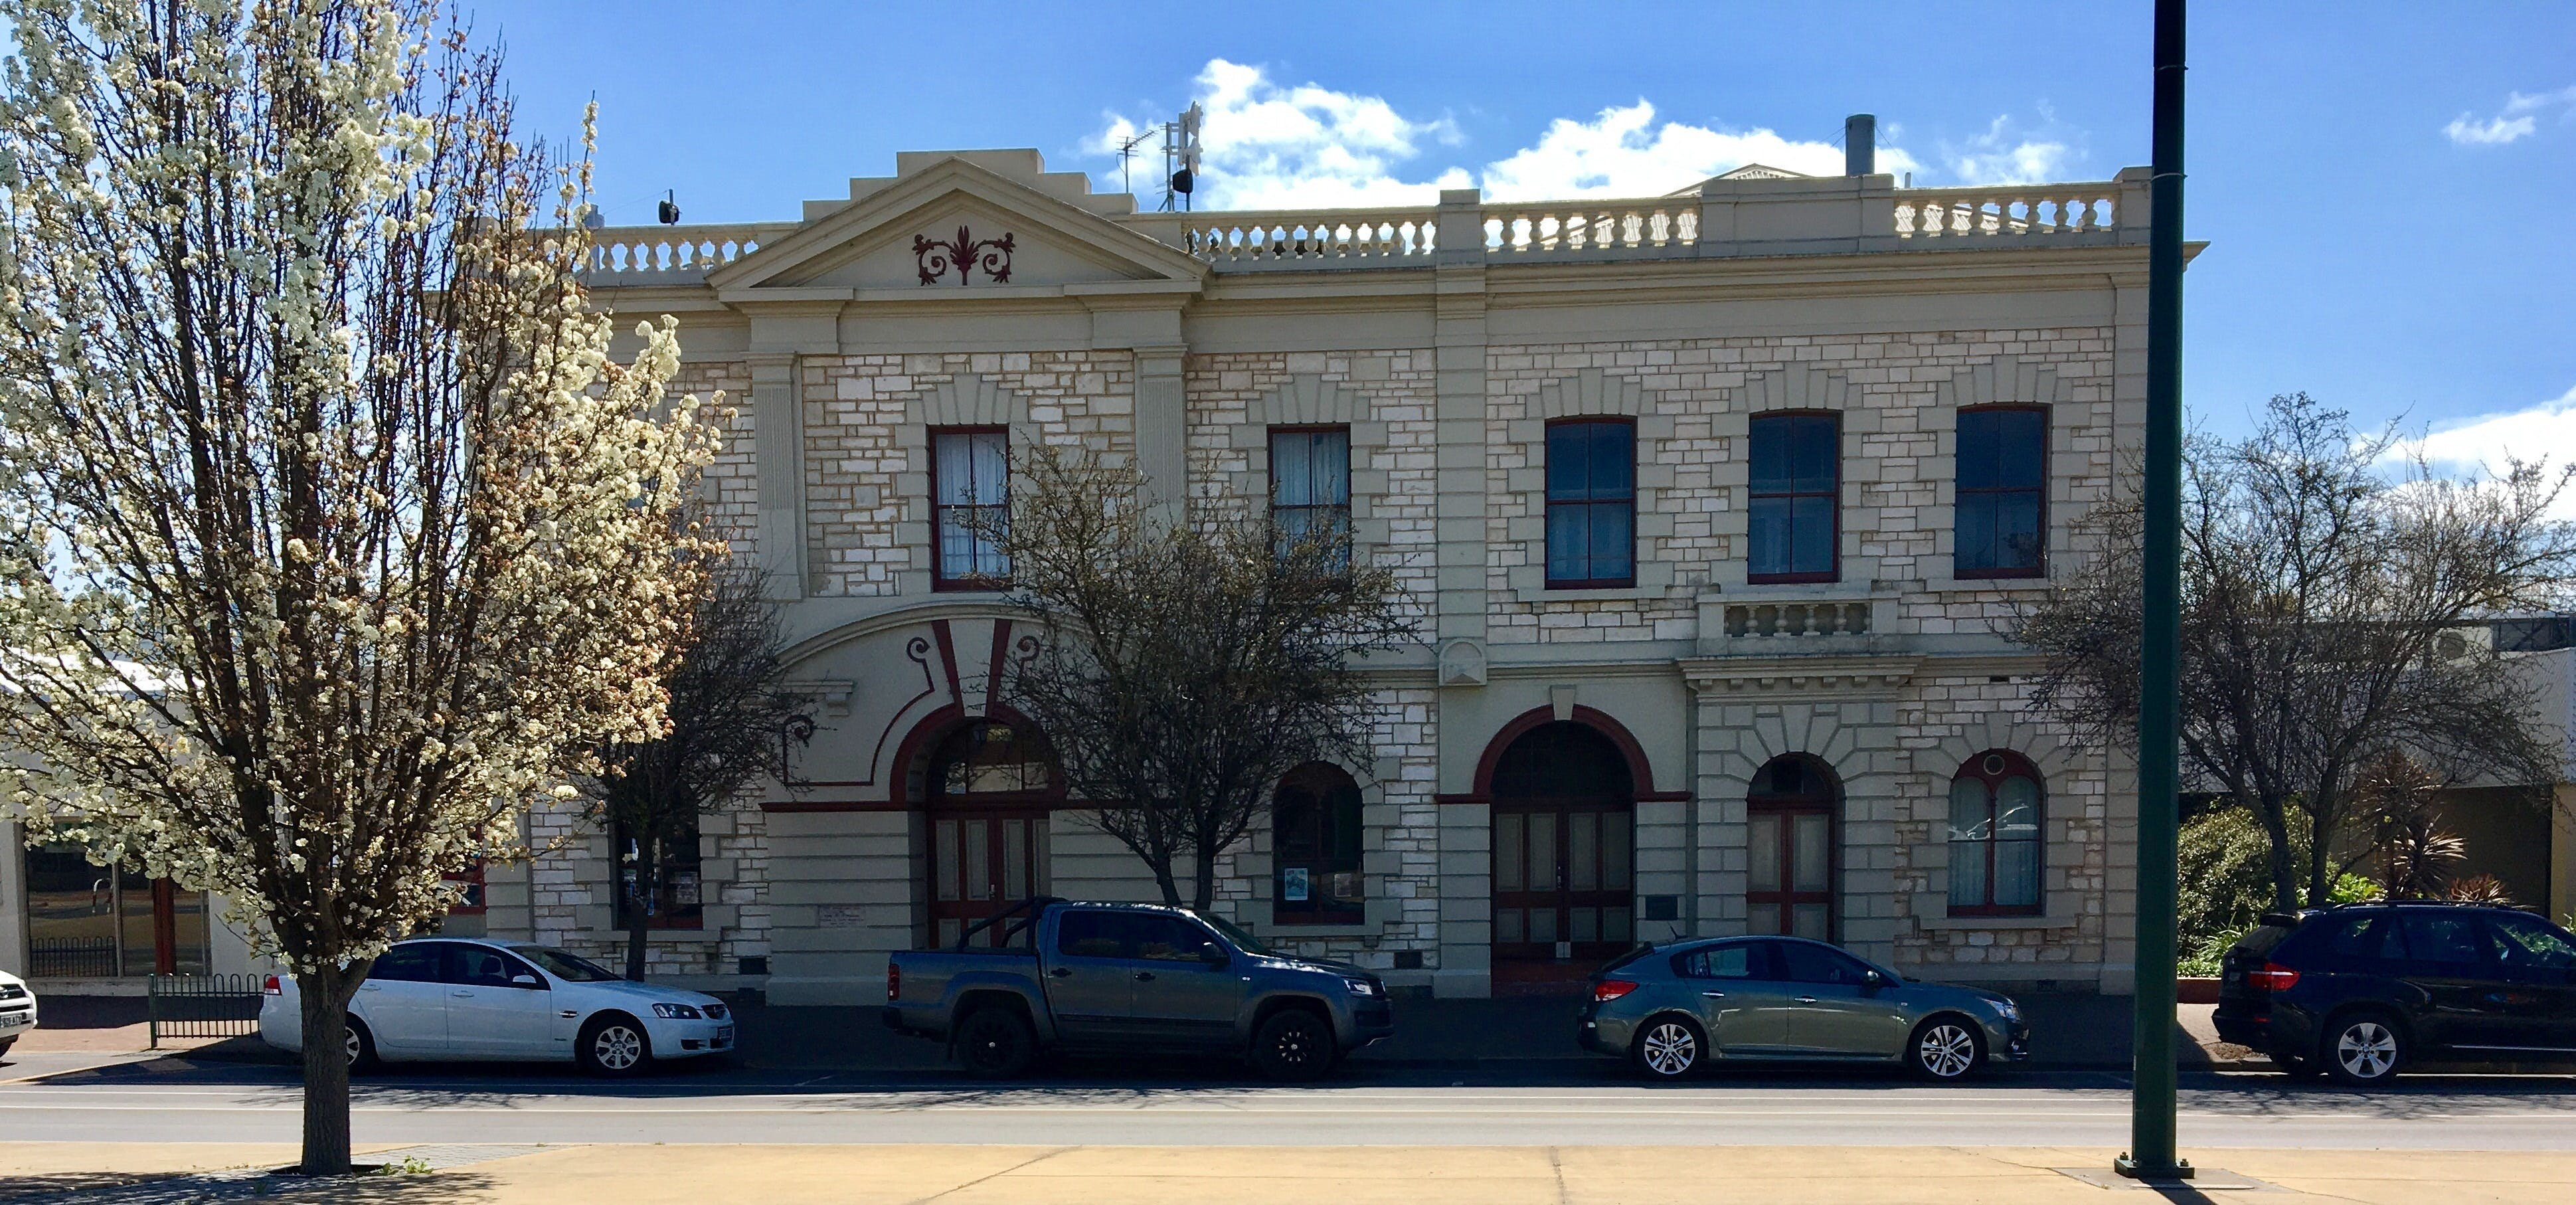 Naracoorte Town Hall - ACT Tourism